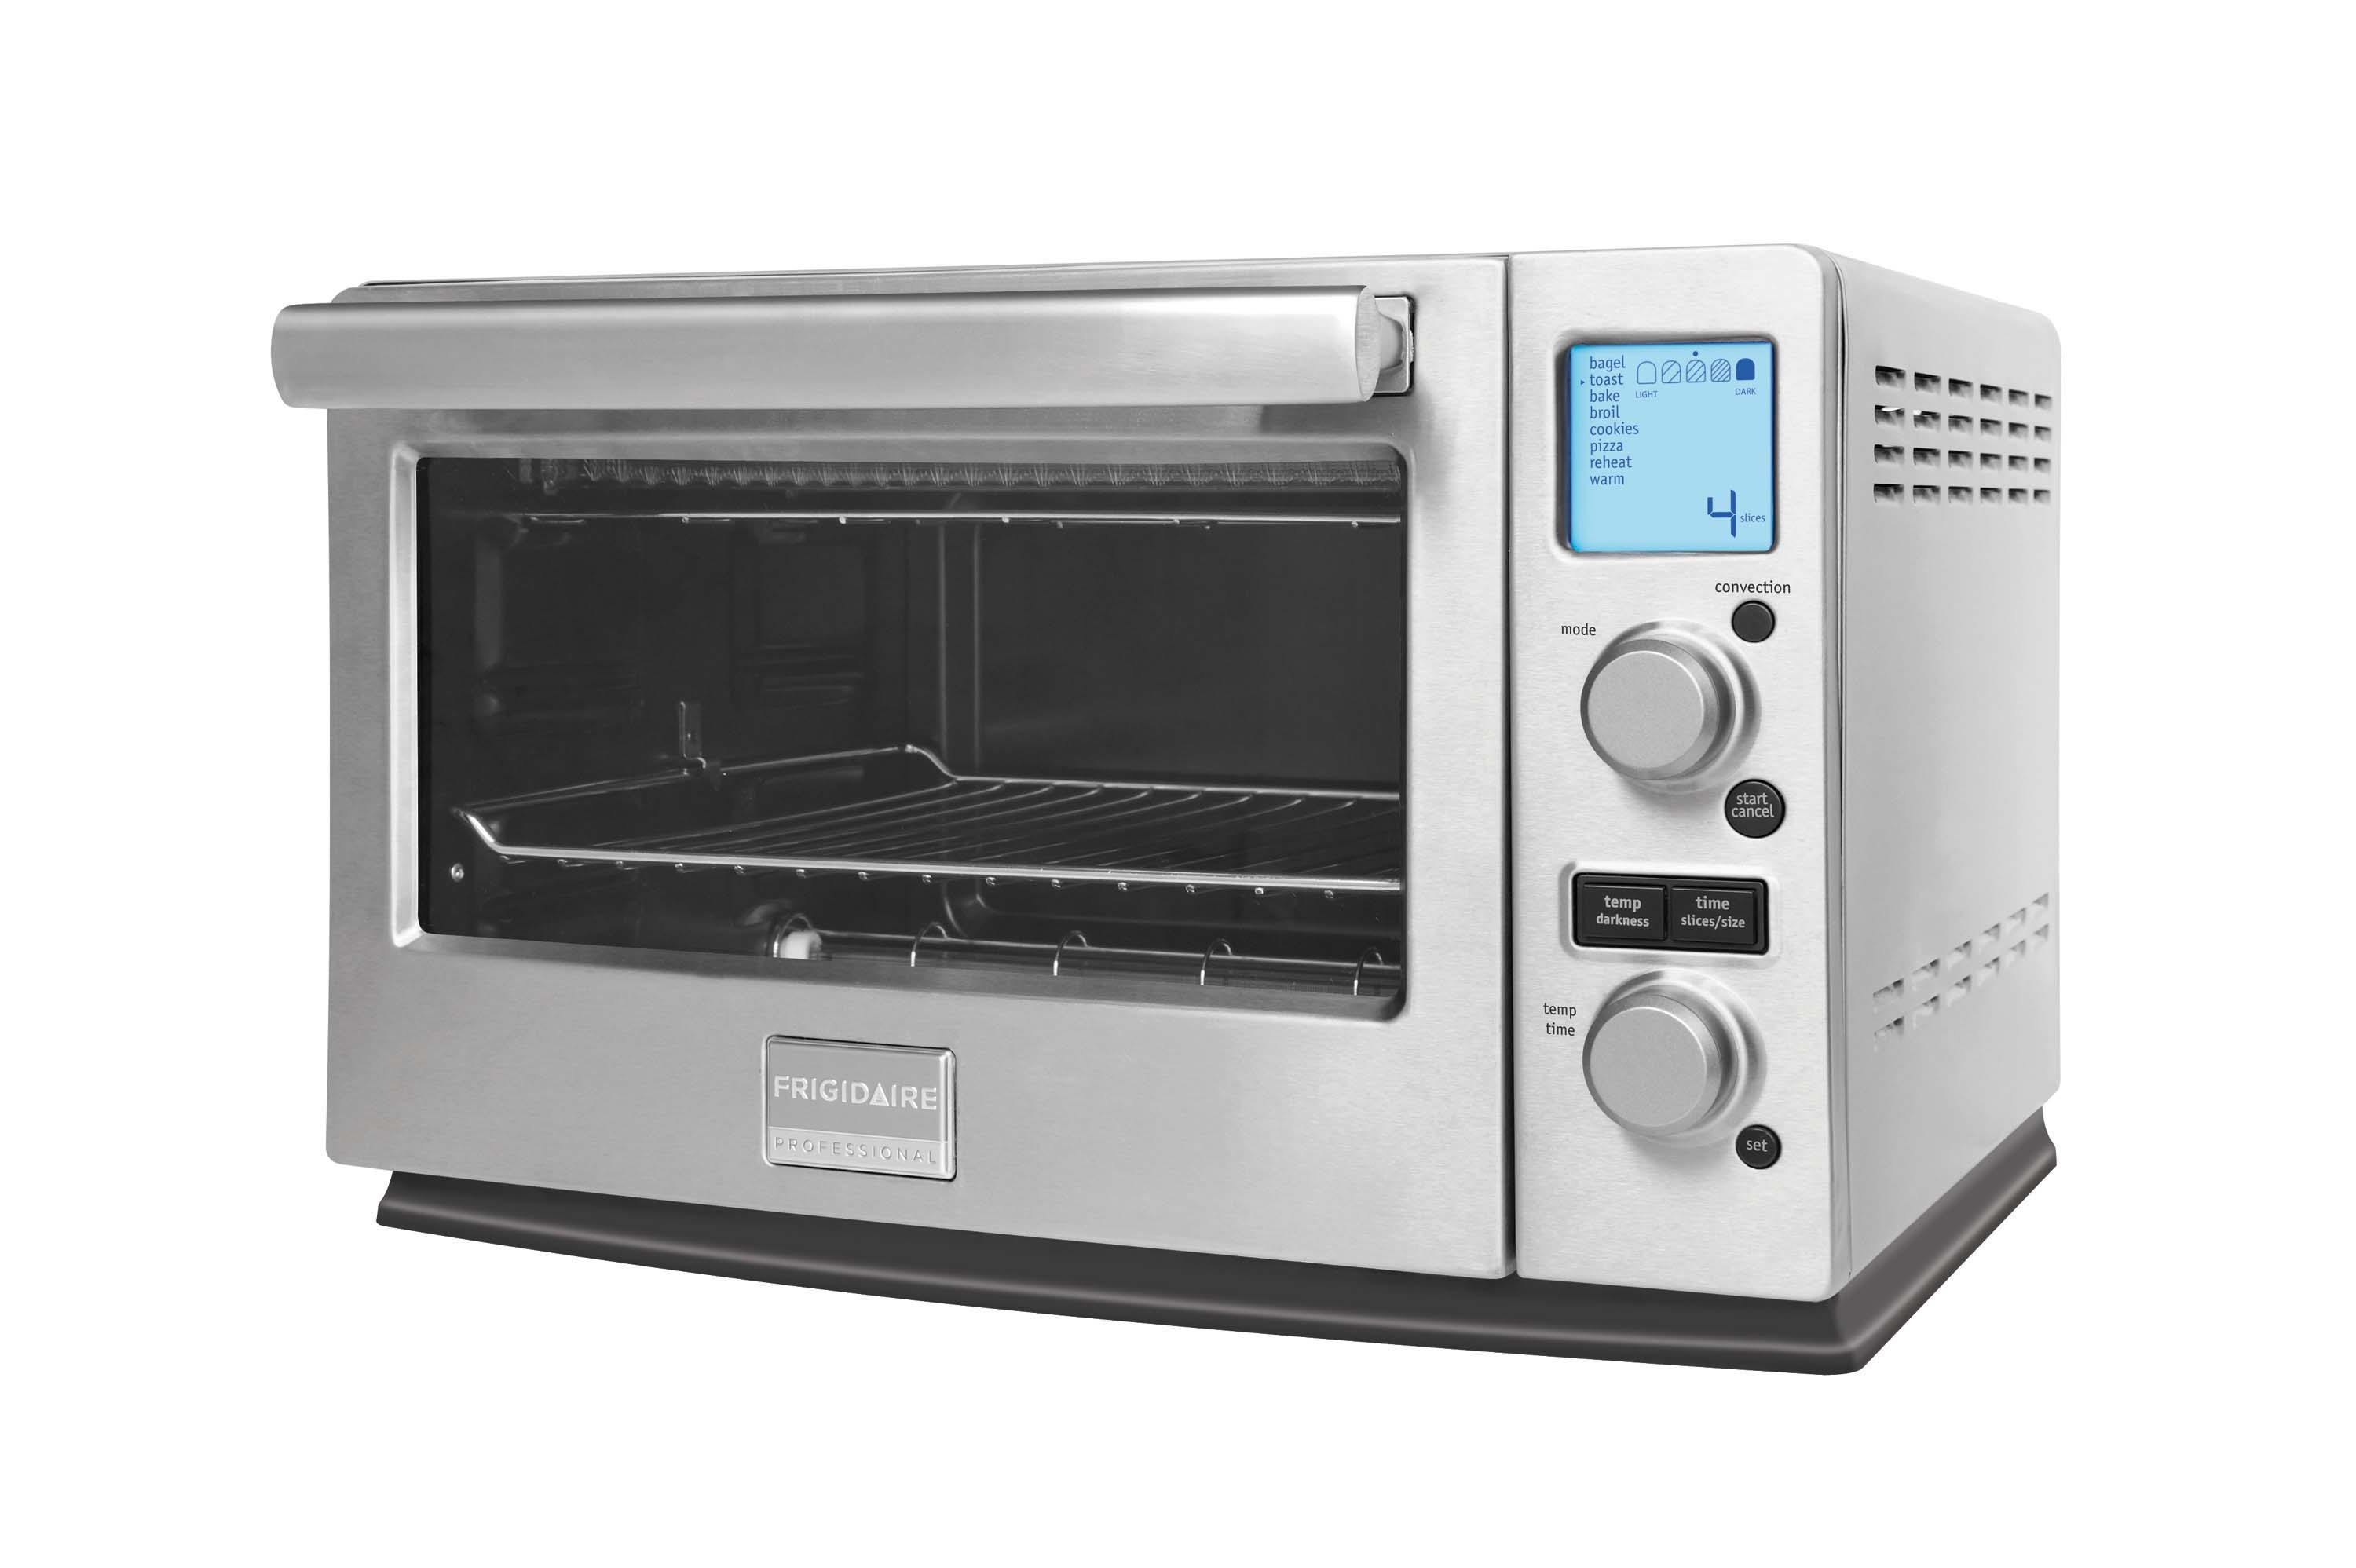 breville a chrome classic beach hamilton toaster oven exterior with slice cool convection